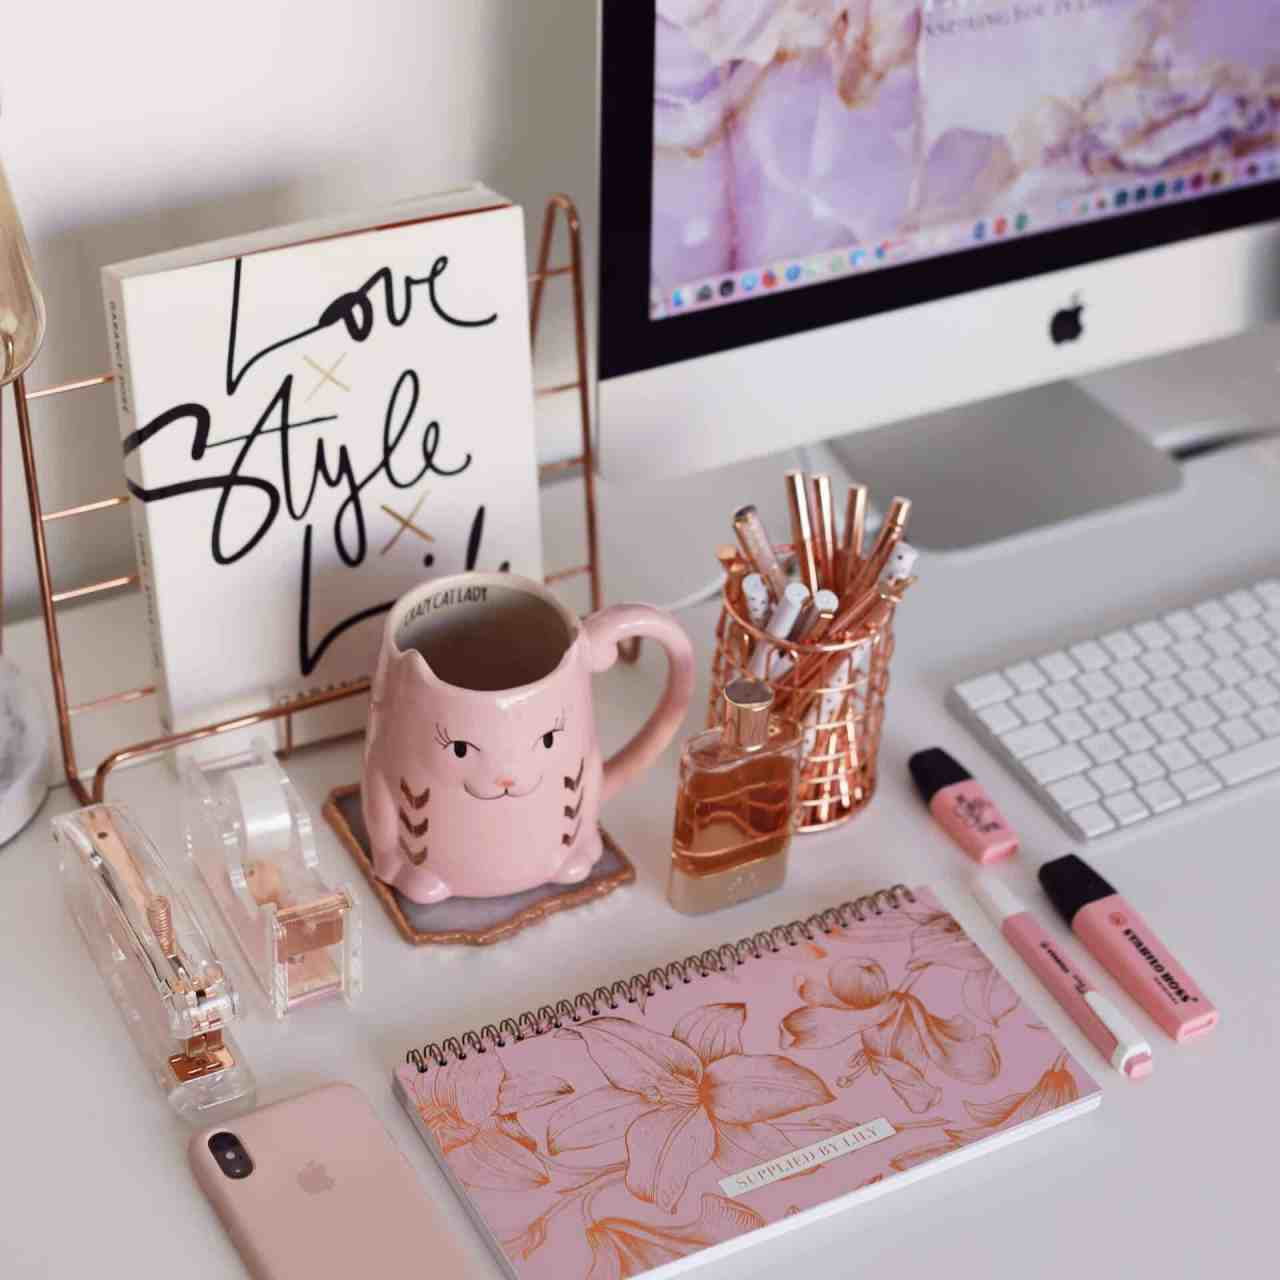 Lifestyle Desk Planner in Luxurious Rose Gold